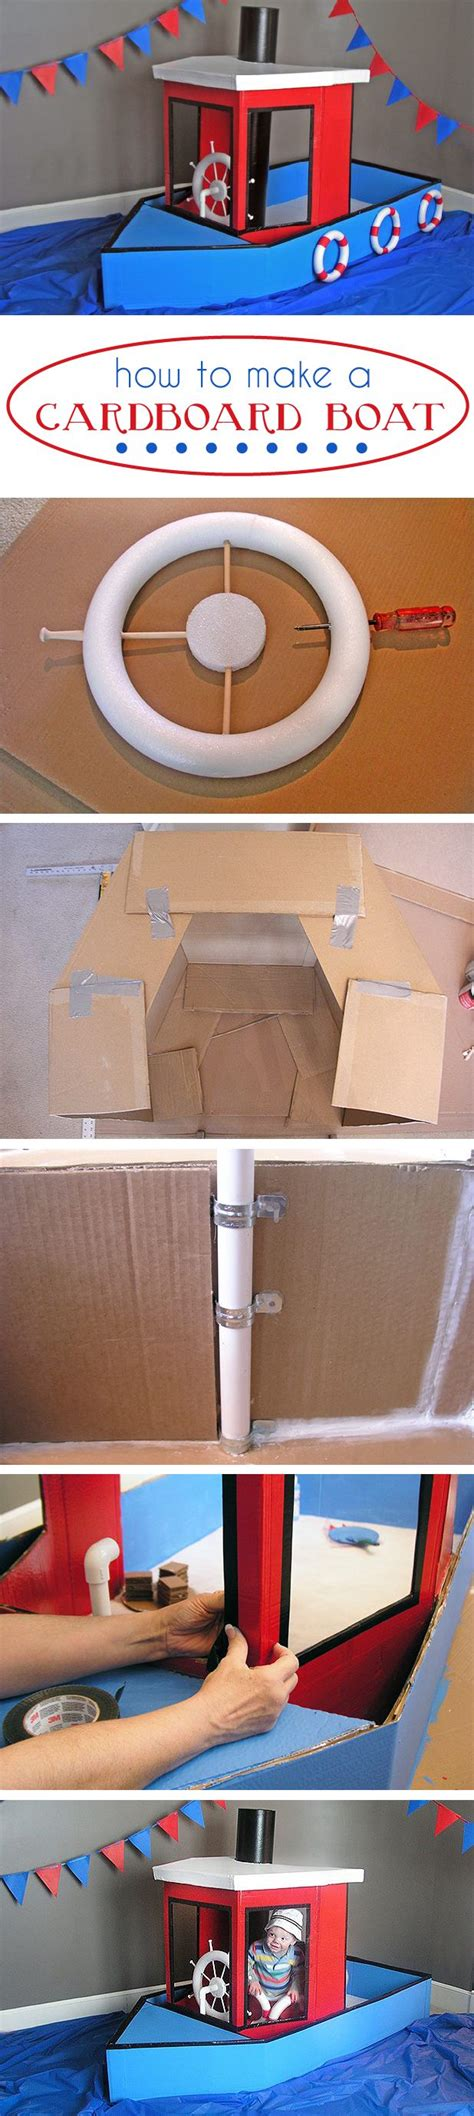 the open boat critical analysis best 25 cardboard forts ideas on pinterest cardboard